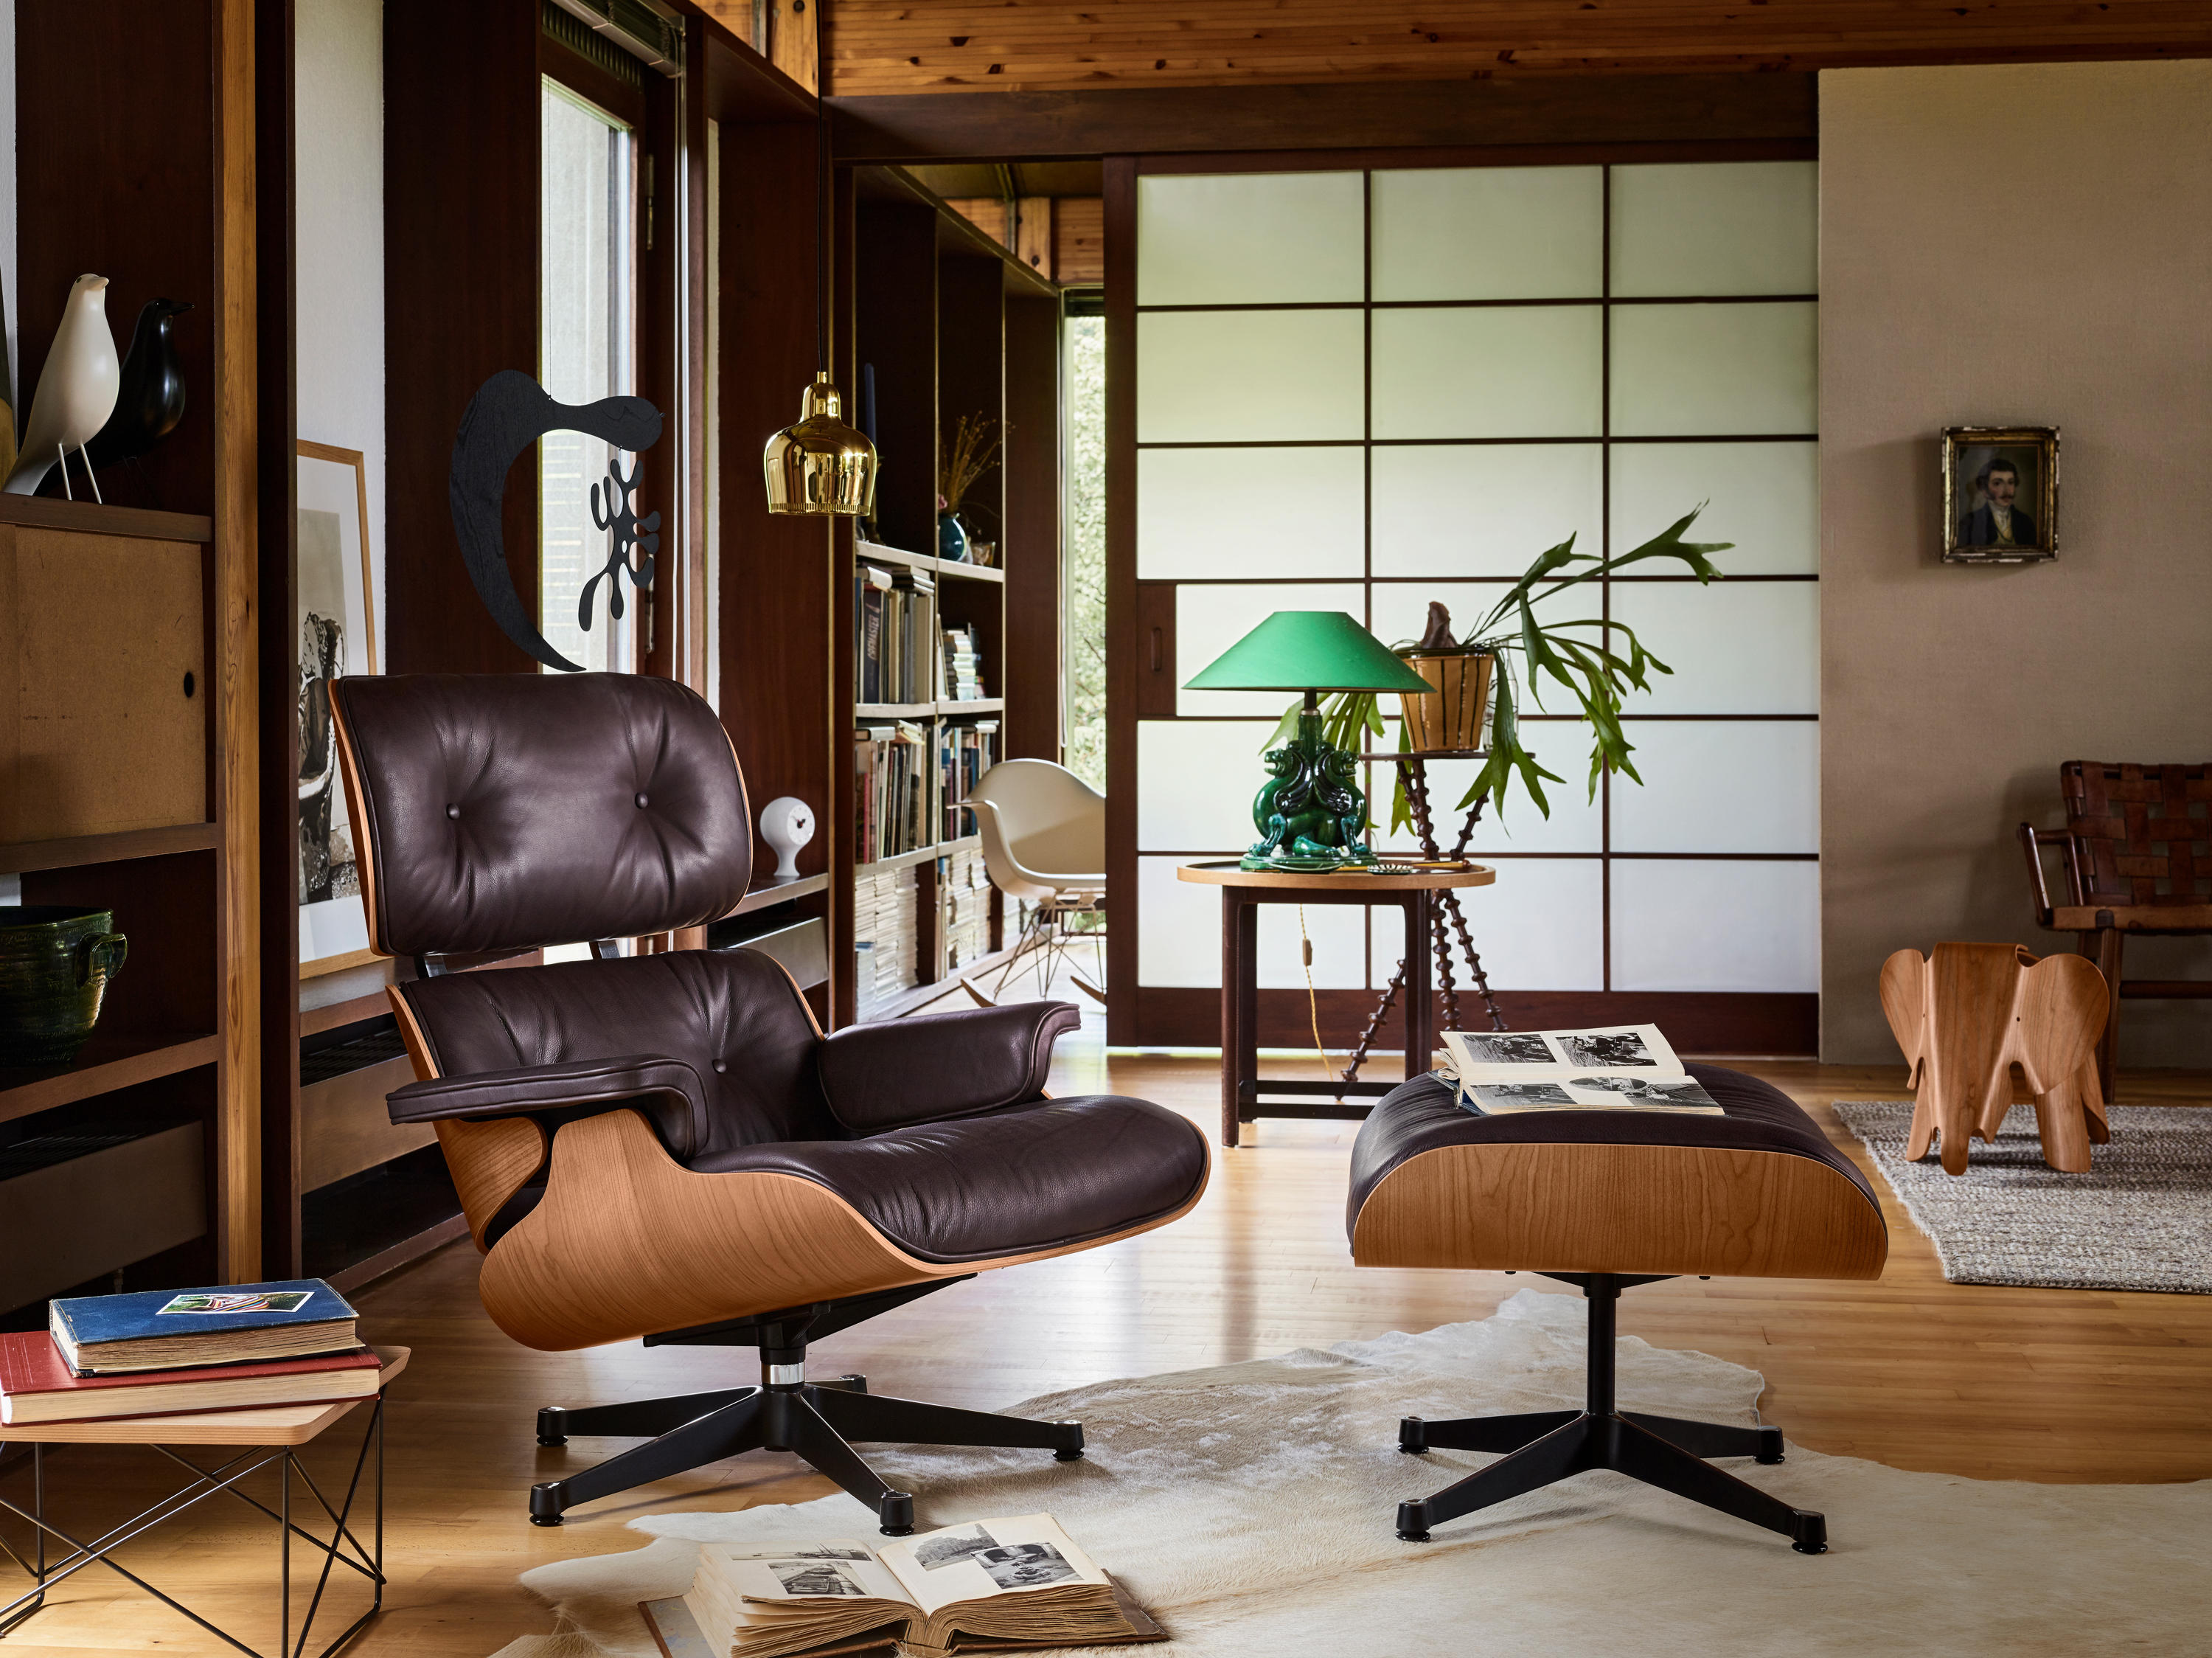 Eames Lounge Chair Living Room this eames lounge chair and ottoman replica should get a